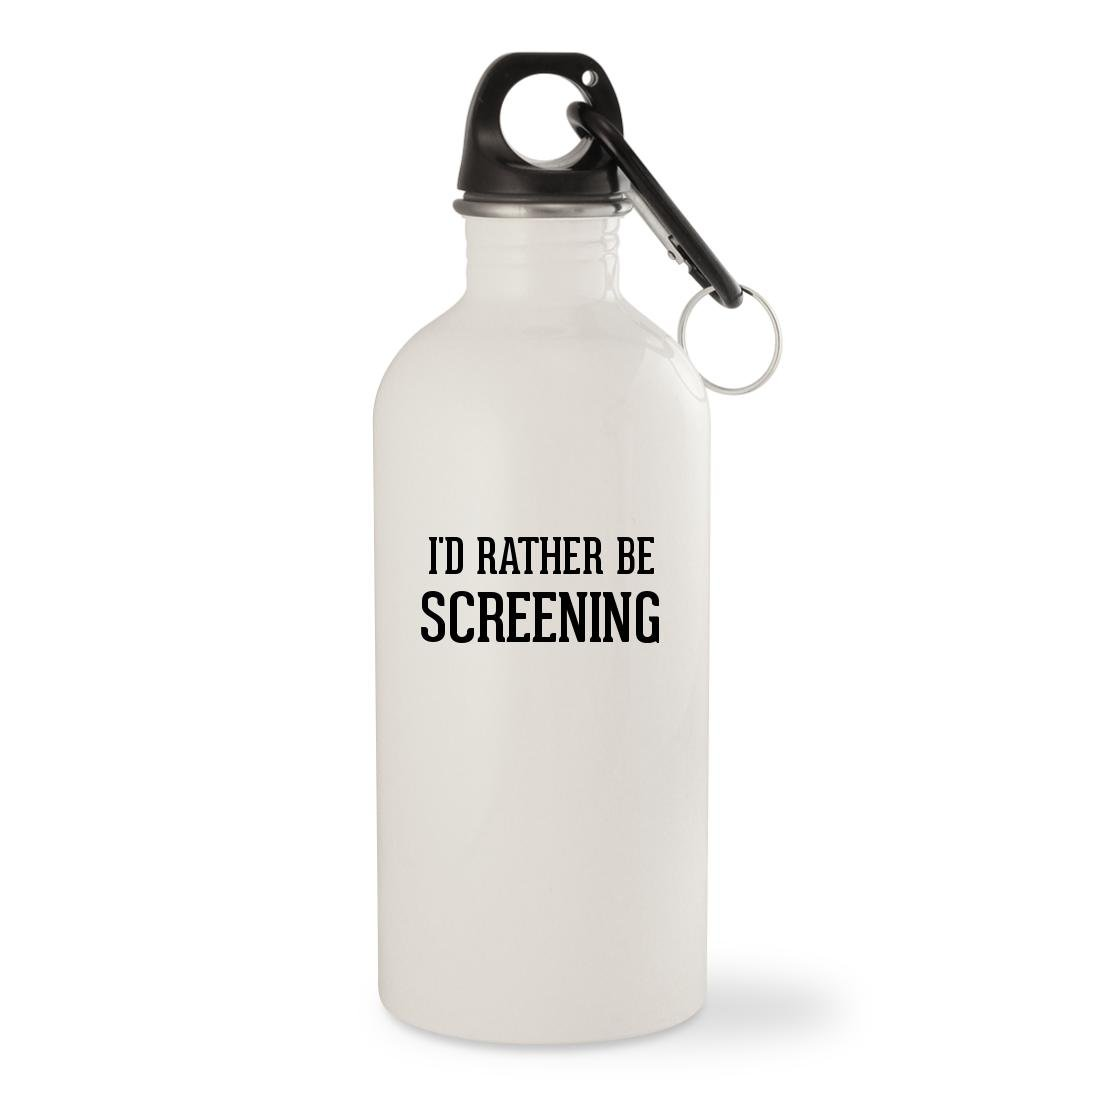 I'd Rather Be SCREENING - White 20oz Stainless Steel Water Bottle with Carabiner